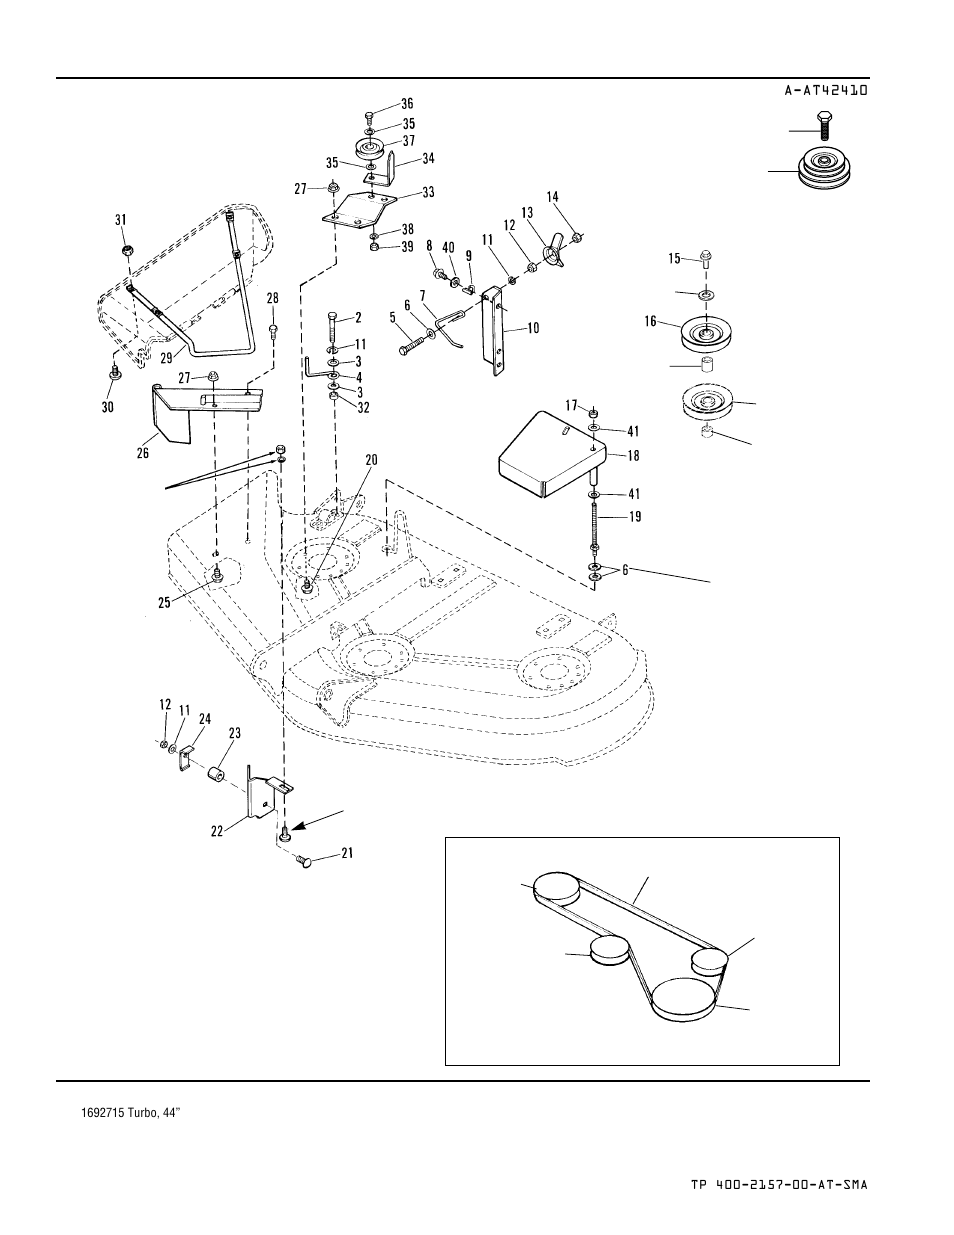 hight resolution of belt routing simplicity turbo collectors 1693227 user manual page 22 40